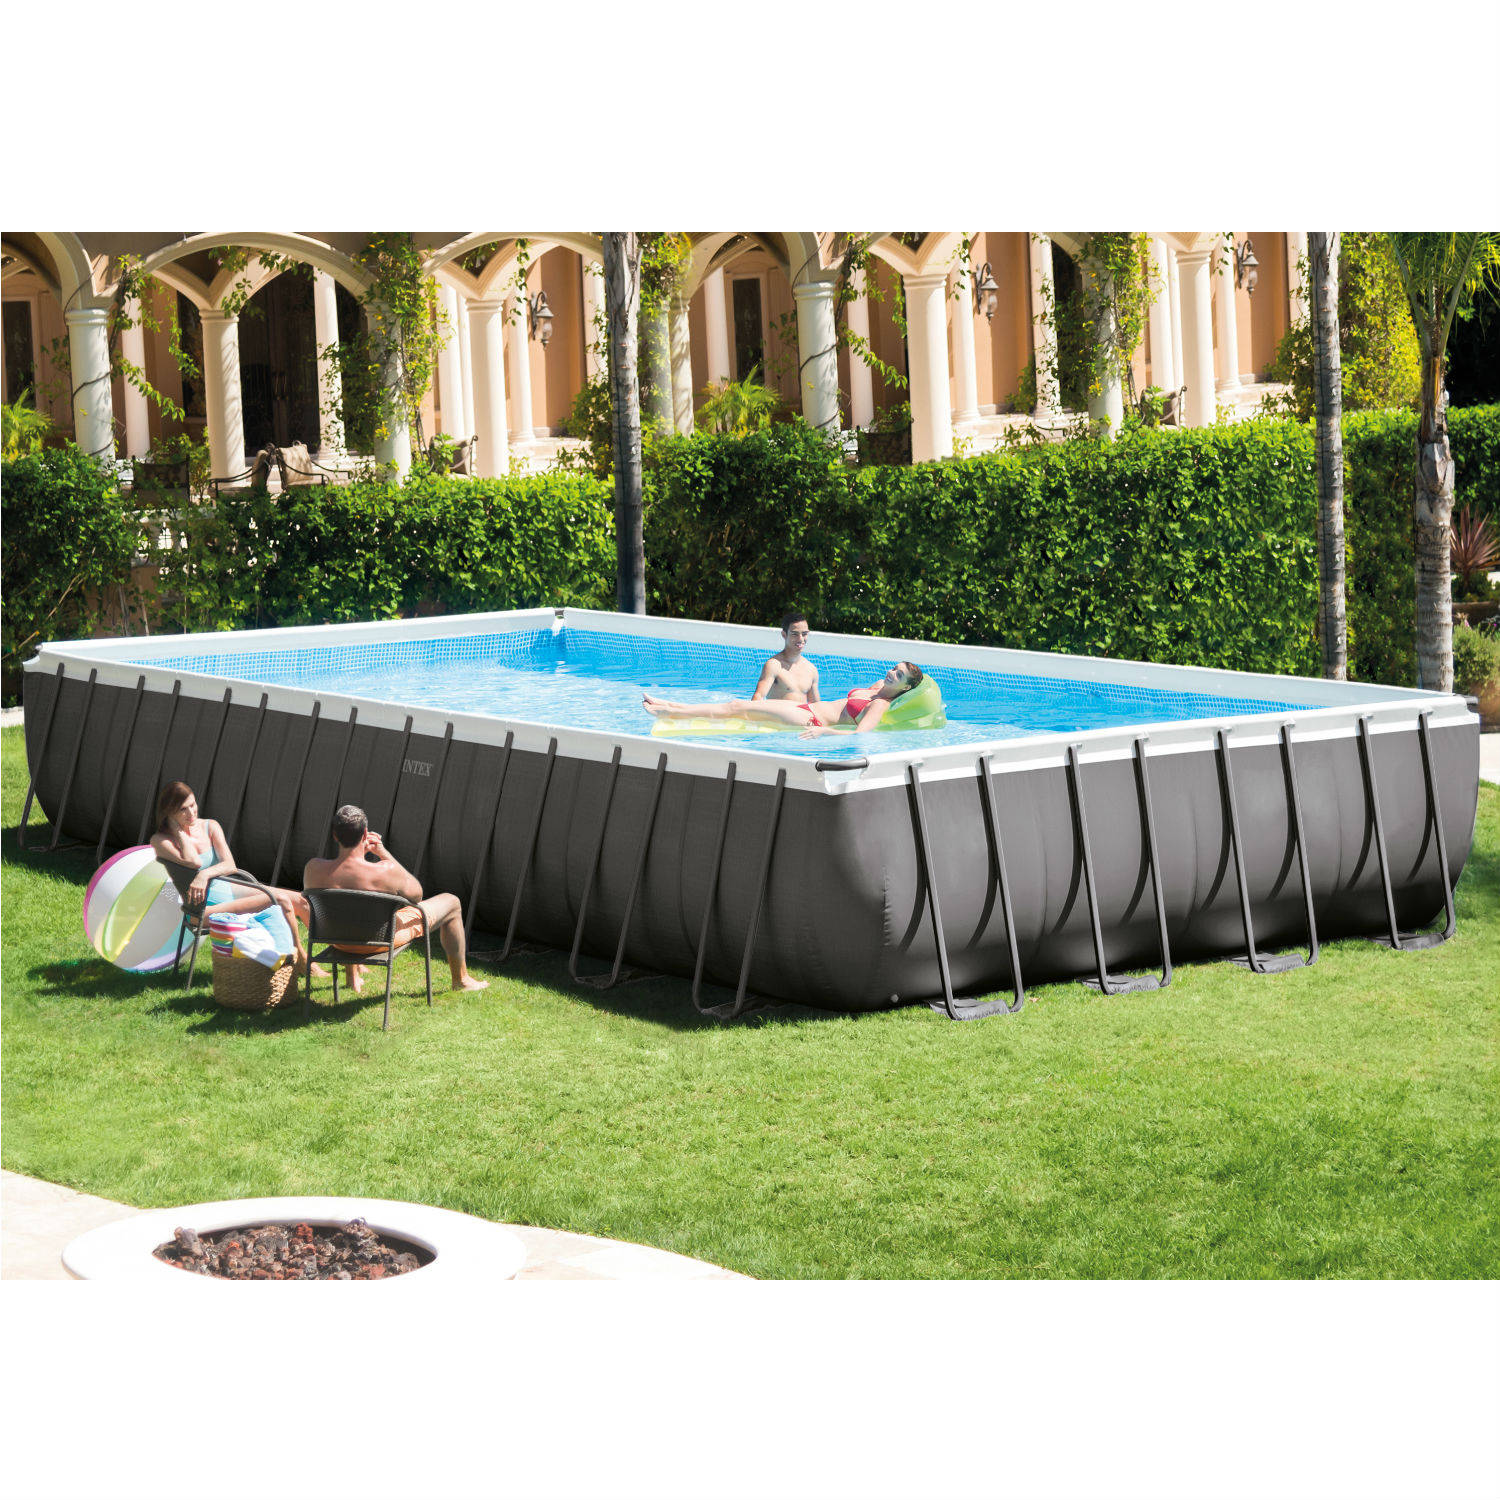 "Rectangle Above Ground Pool coleman power steel 18' x 9' x 48"" rectangular frame swimming pool"